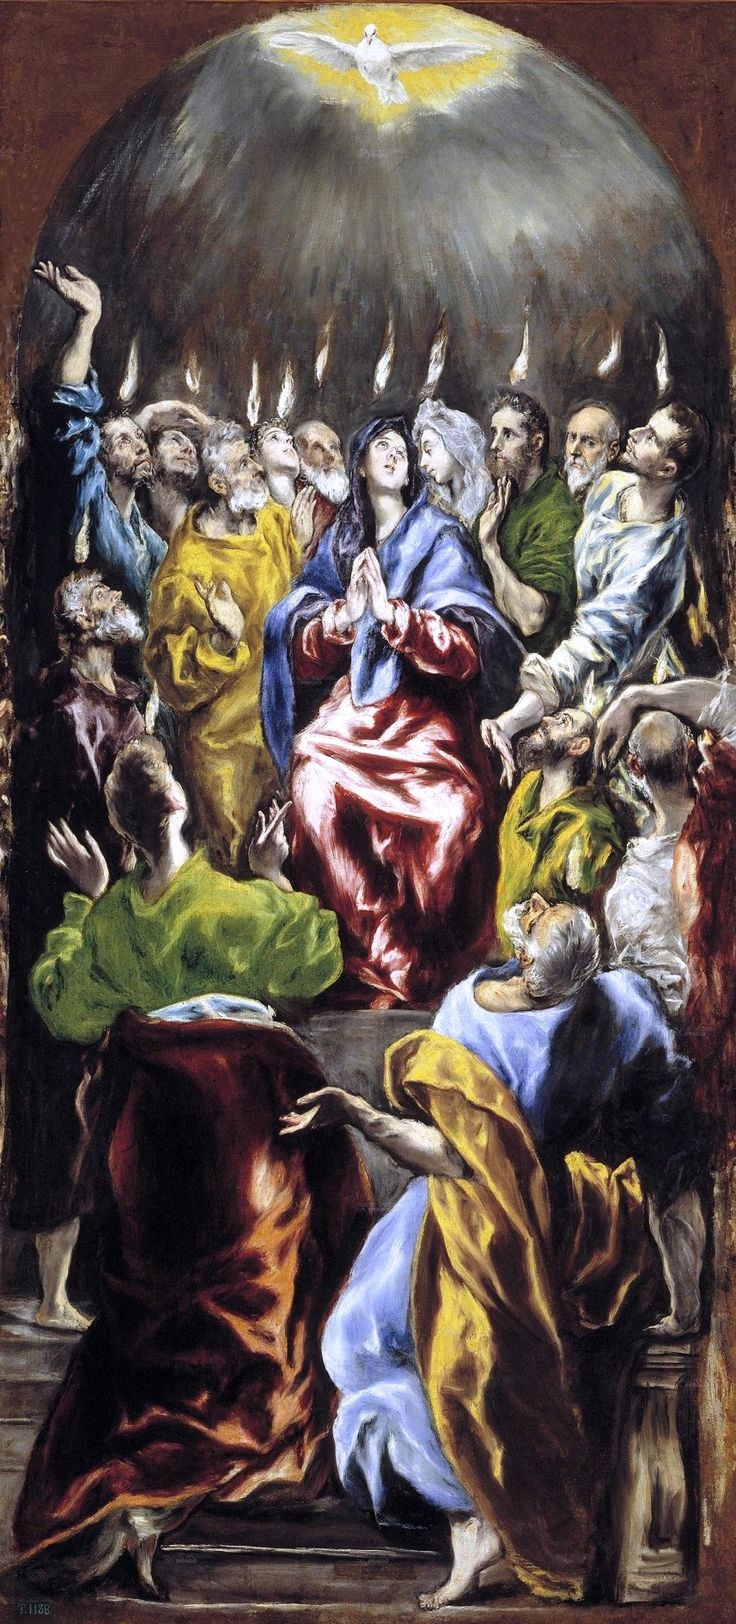 "Art from Spain - Doménikos Theotokópoulos (Crete 1541 – Toledo 1614), most widely known as ""El Greco"", was a painter, sculptor and architect of the Spanish Renaissance. El Greco was born in Crete, which was at that time part of the Republic of Venice, in 1577, he moved to Toledo, Spain, where he lived and worked until his death. - The Pentecost - Pentecostés_(1597 - 1600) Muséo del Prado, Madrid."